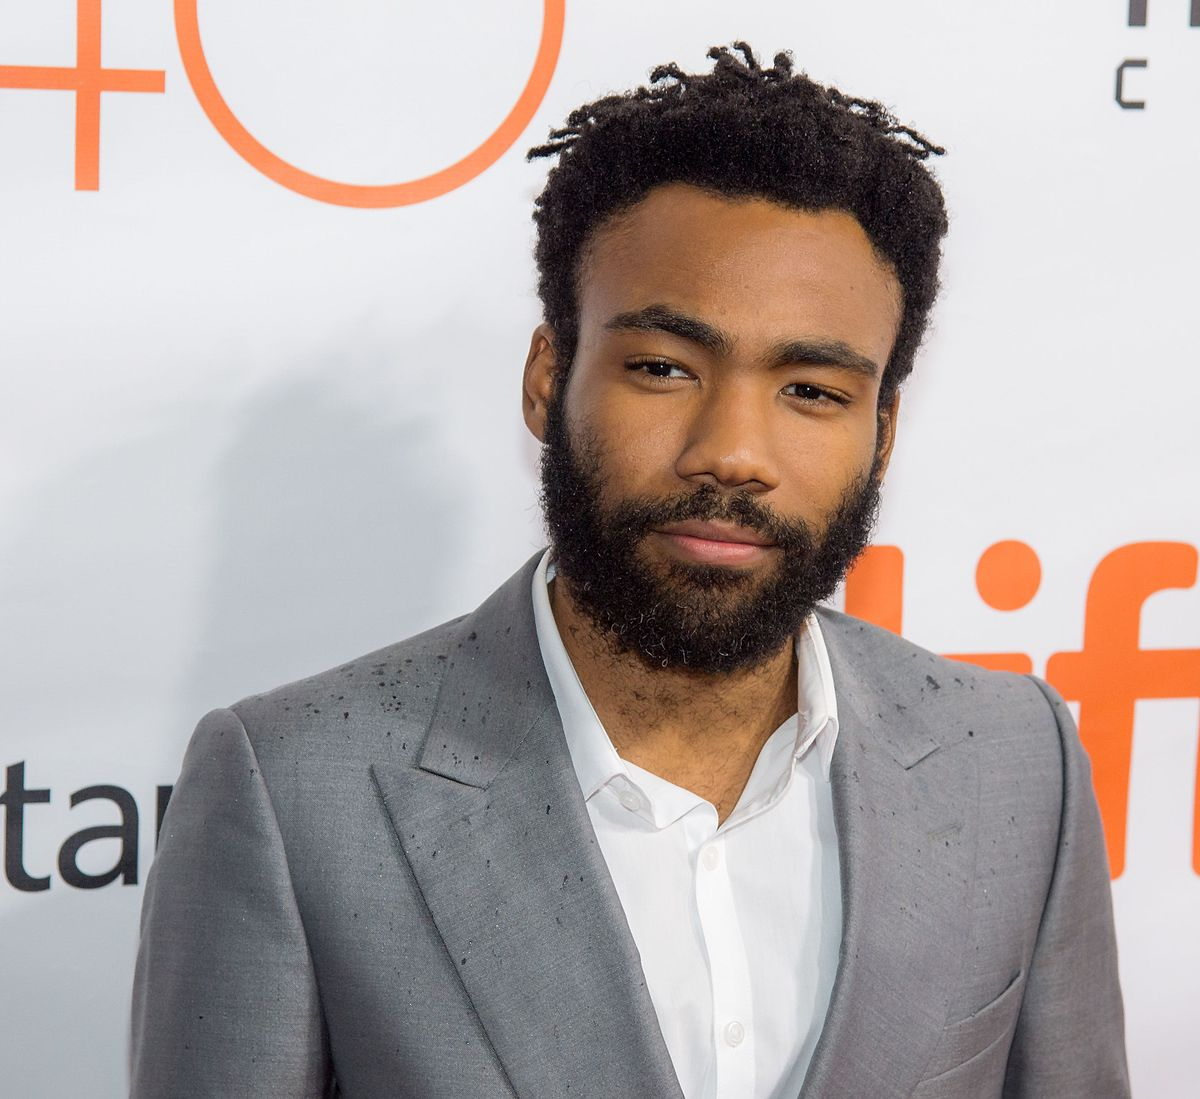 List Of Awards And Nominations Received By Donald Glover